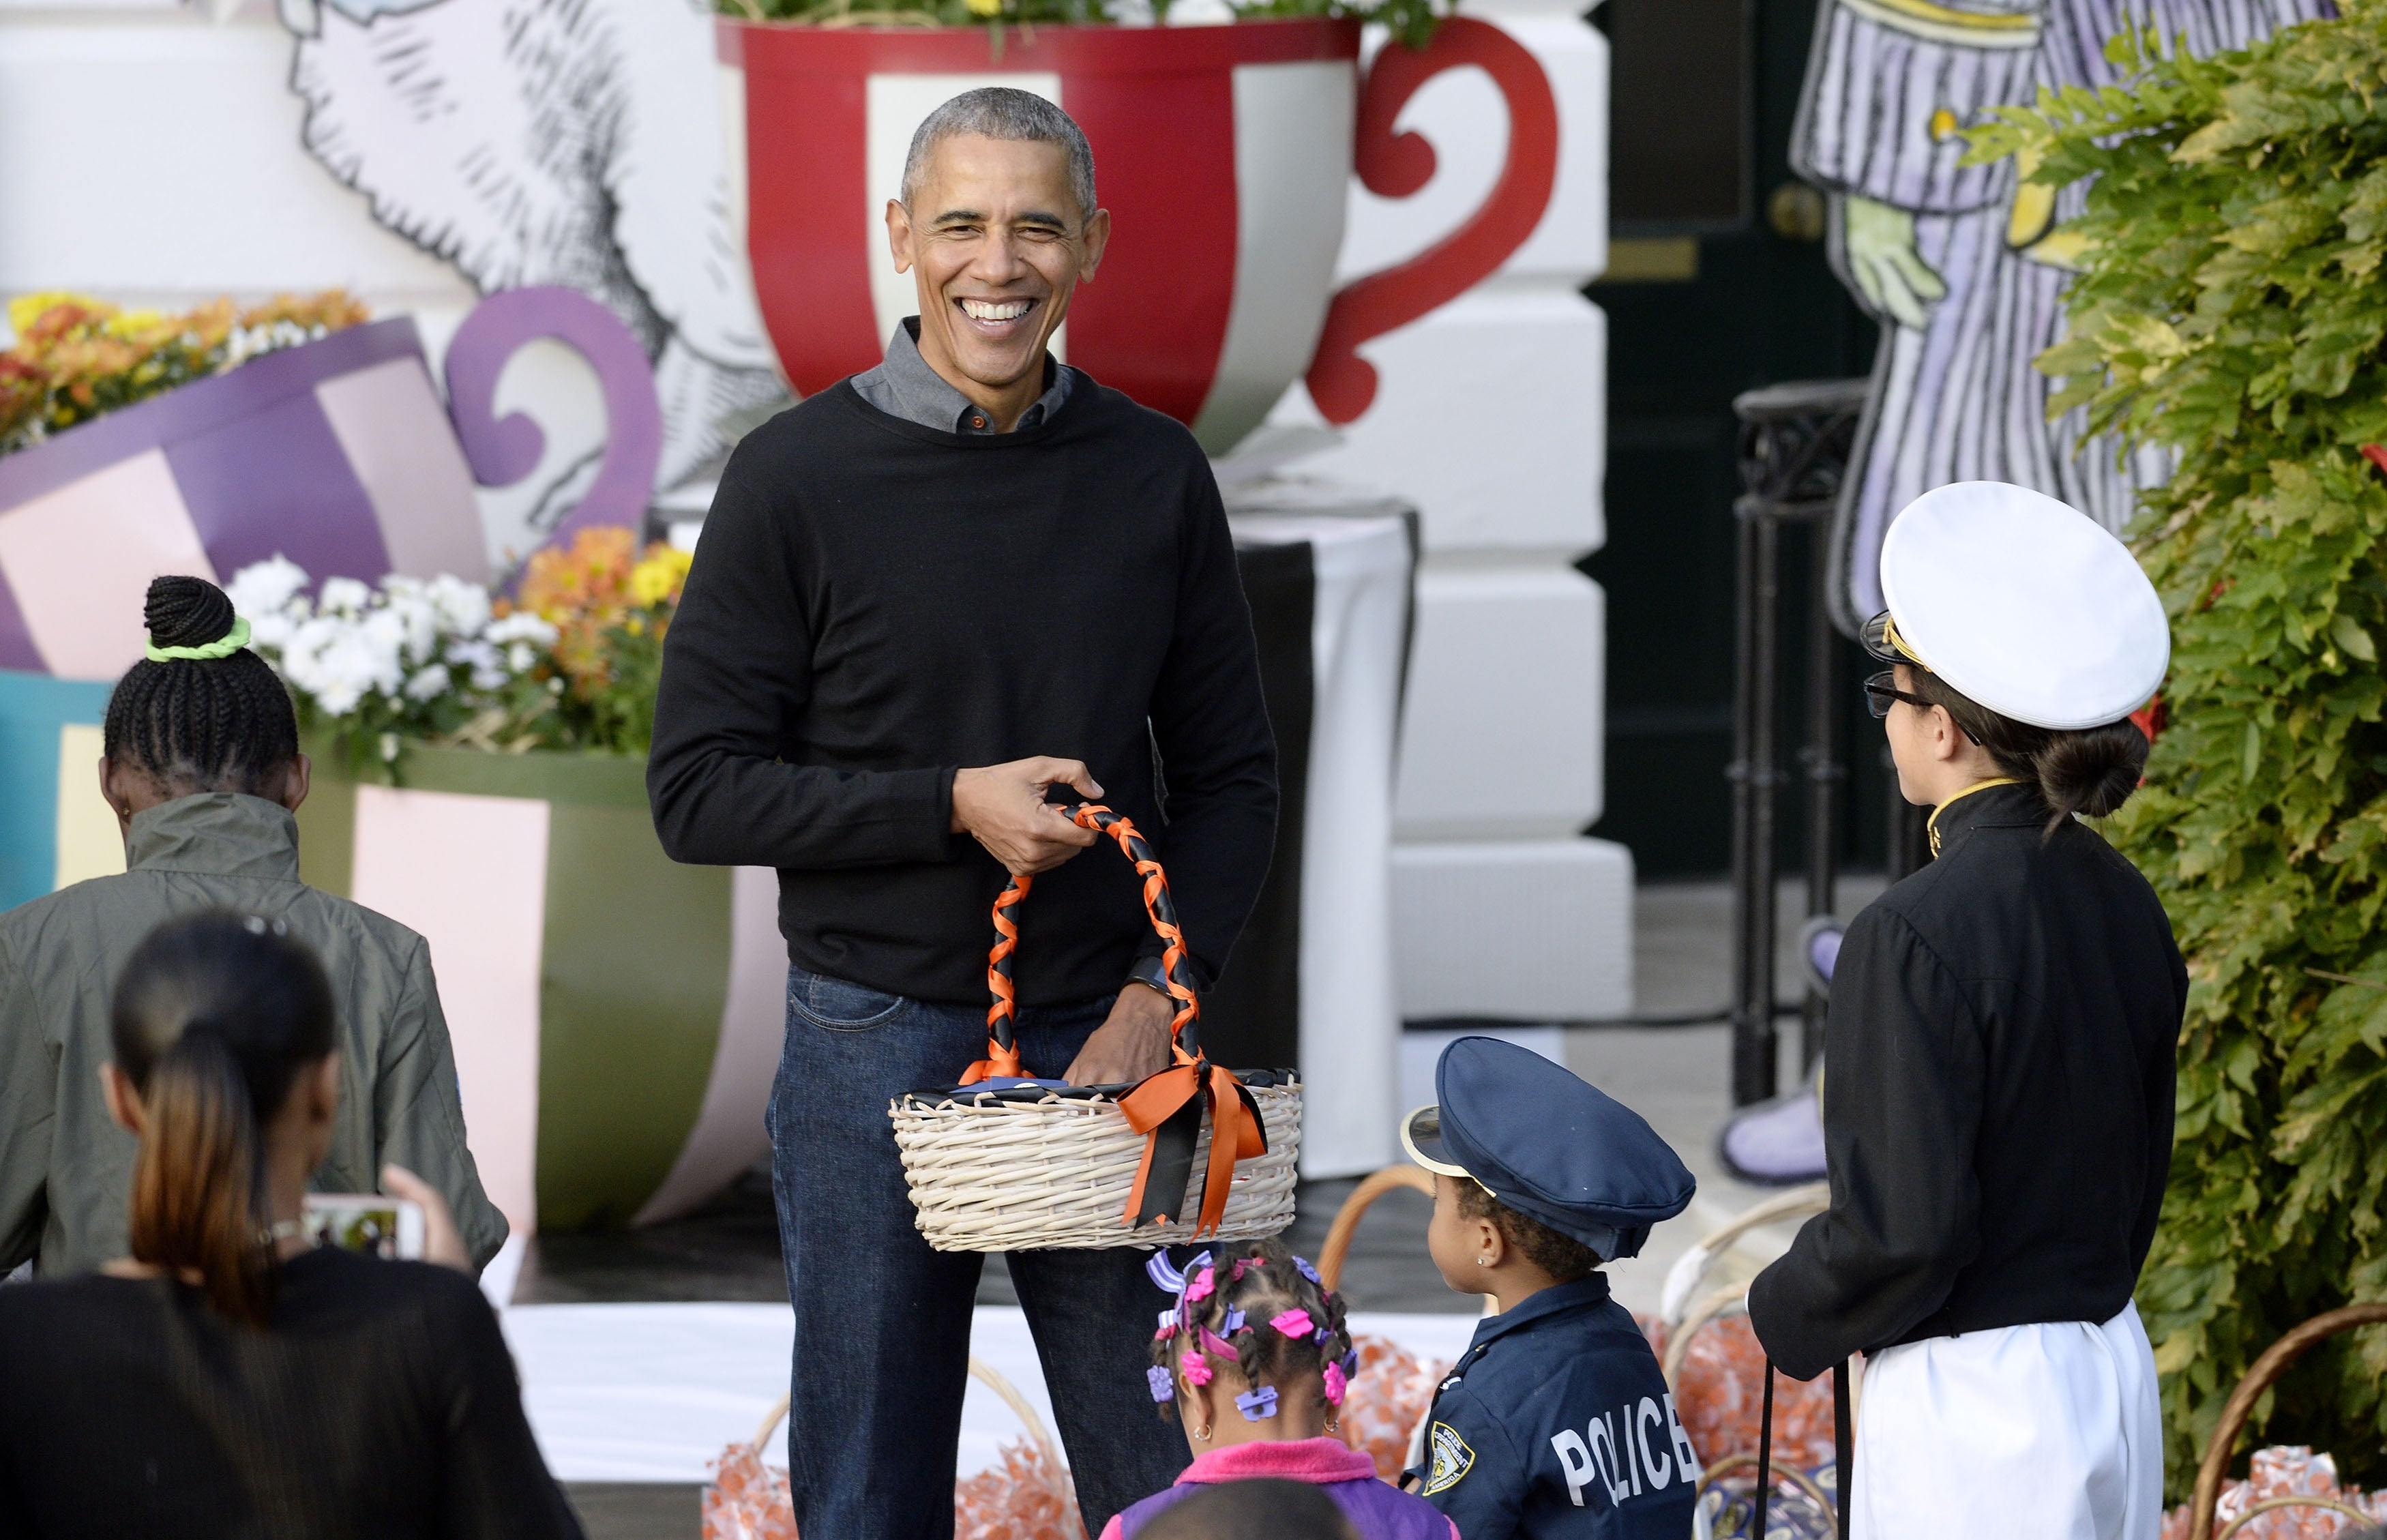 president obama sings 'purple rain' to trick-or-treater dressed as